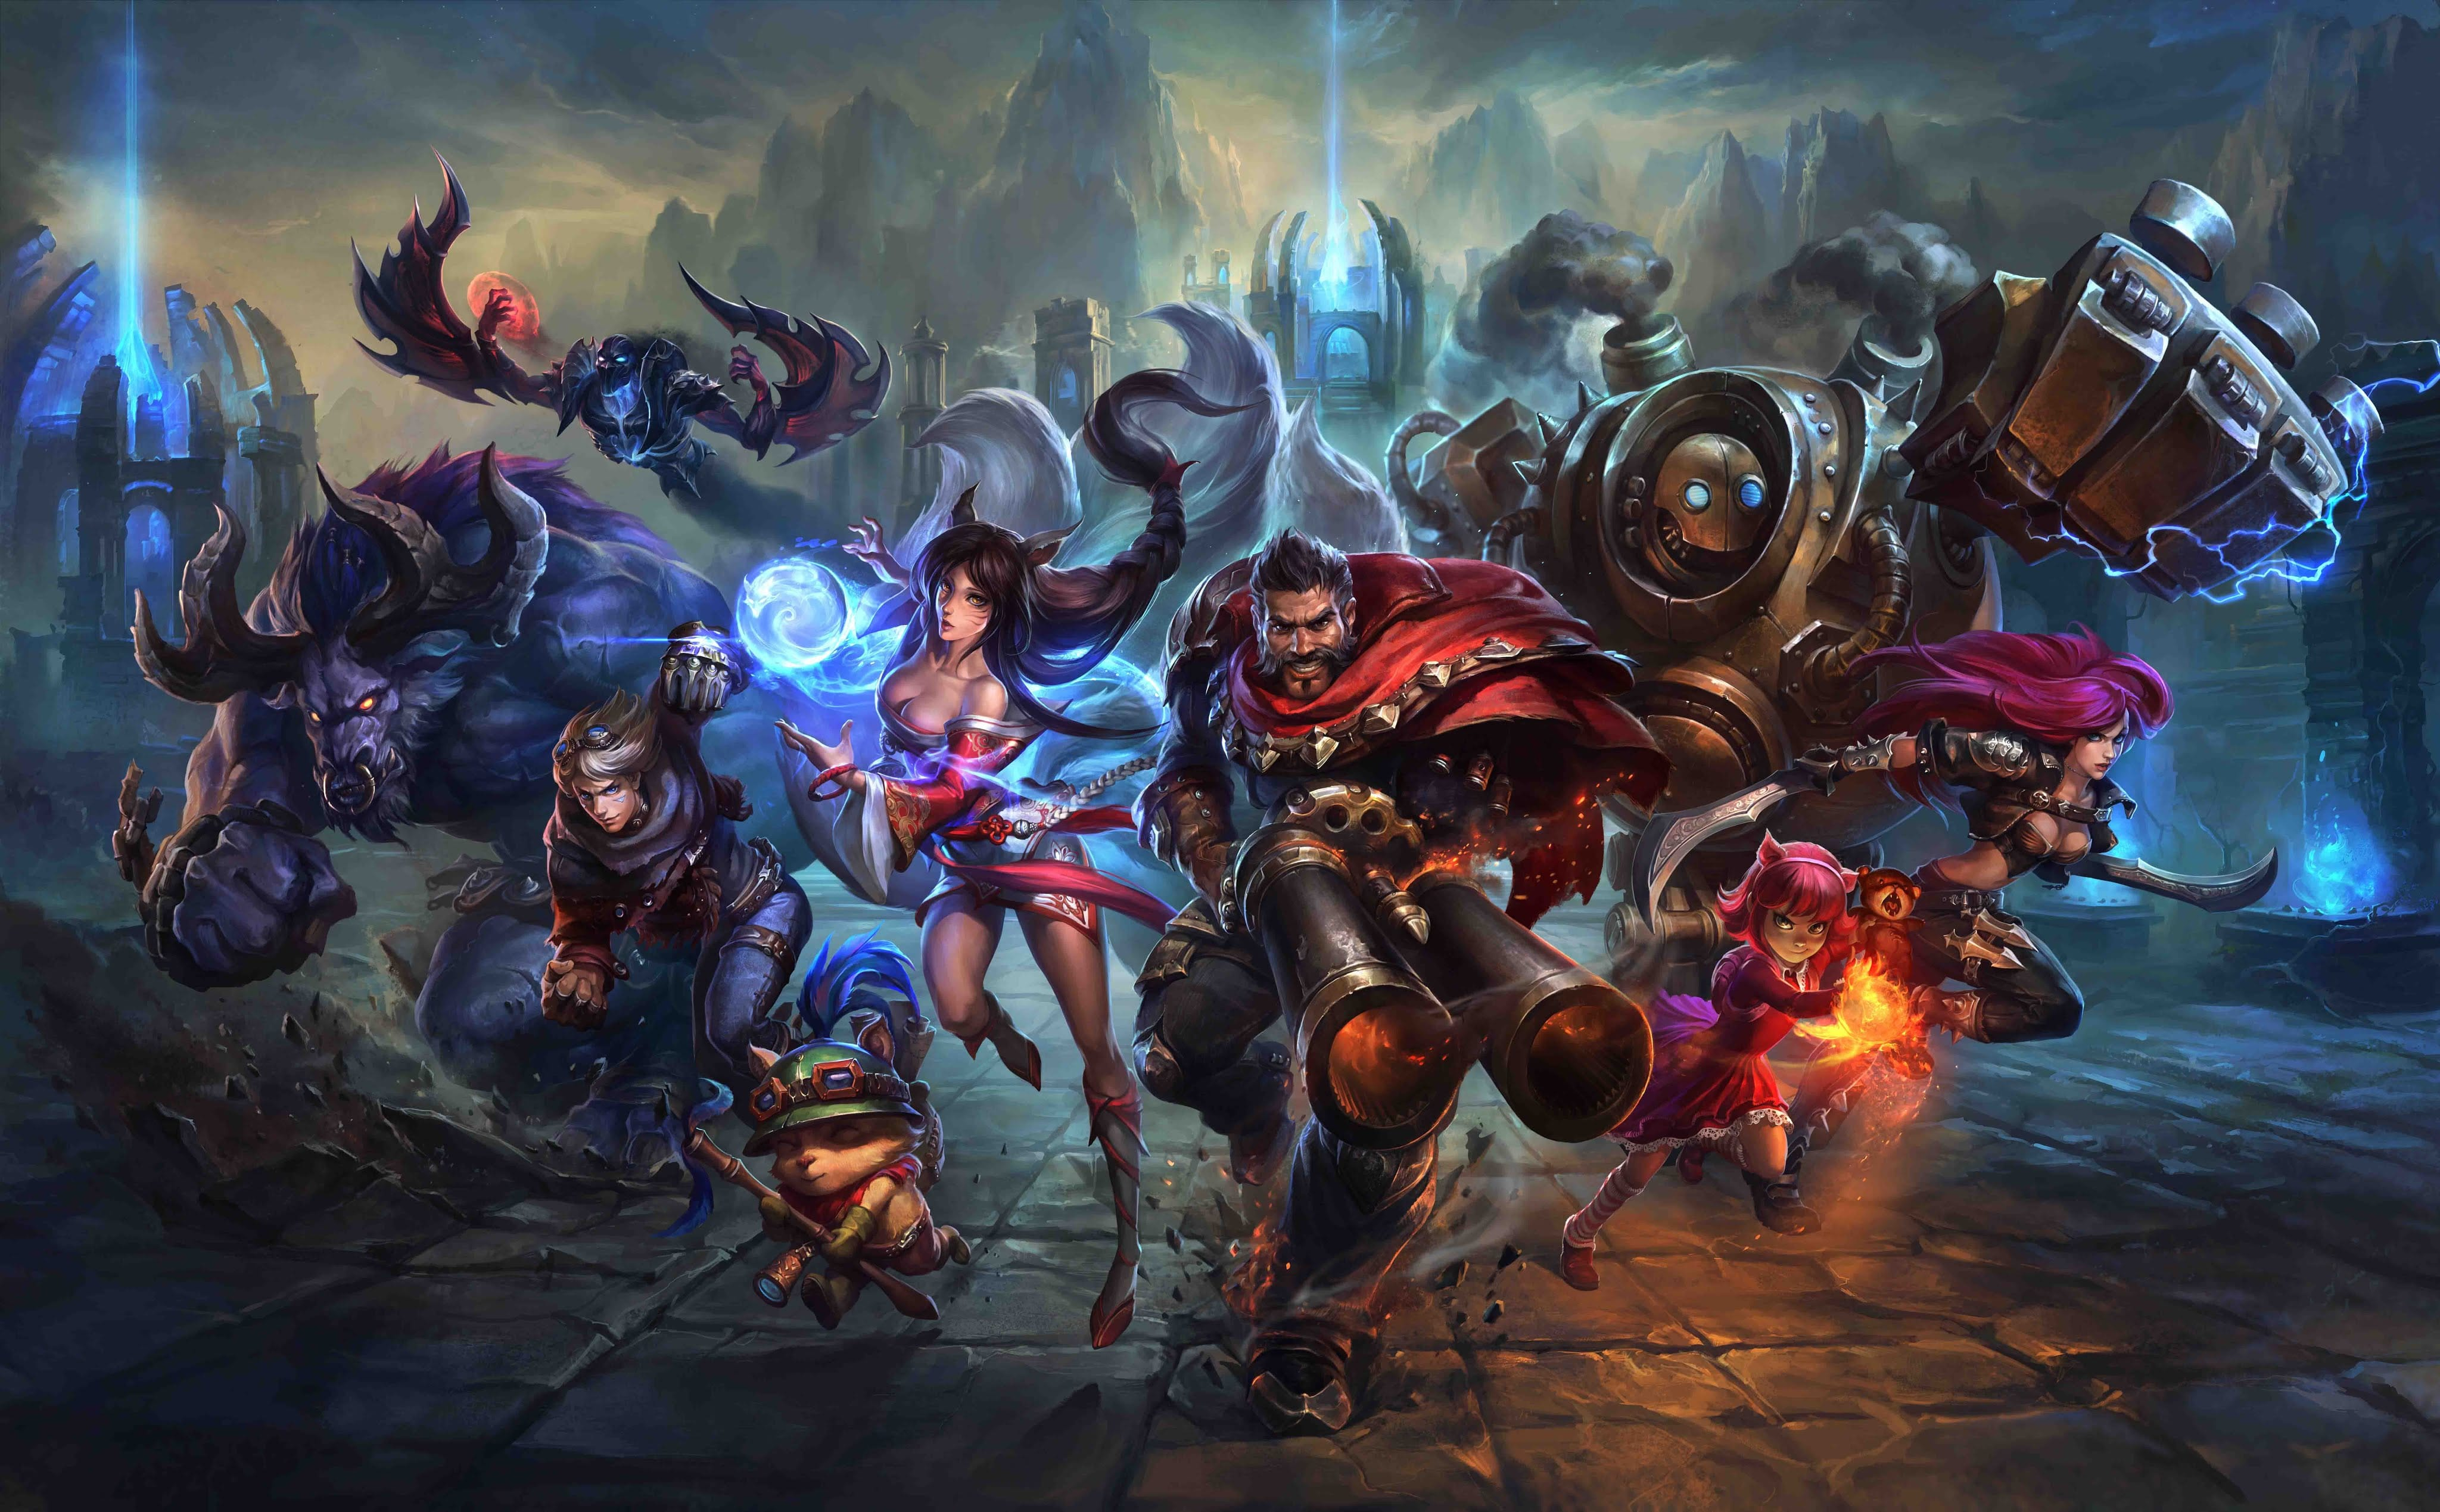 league of legends game, What Is The League Of Legends Game?